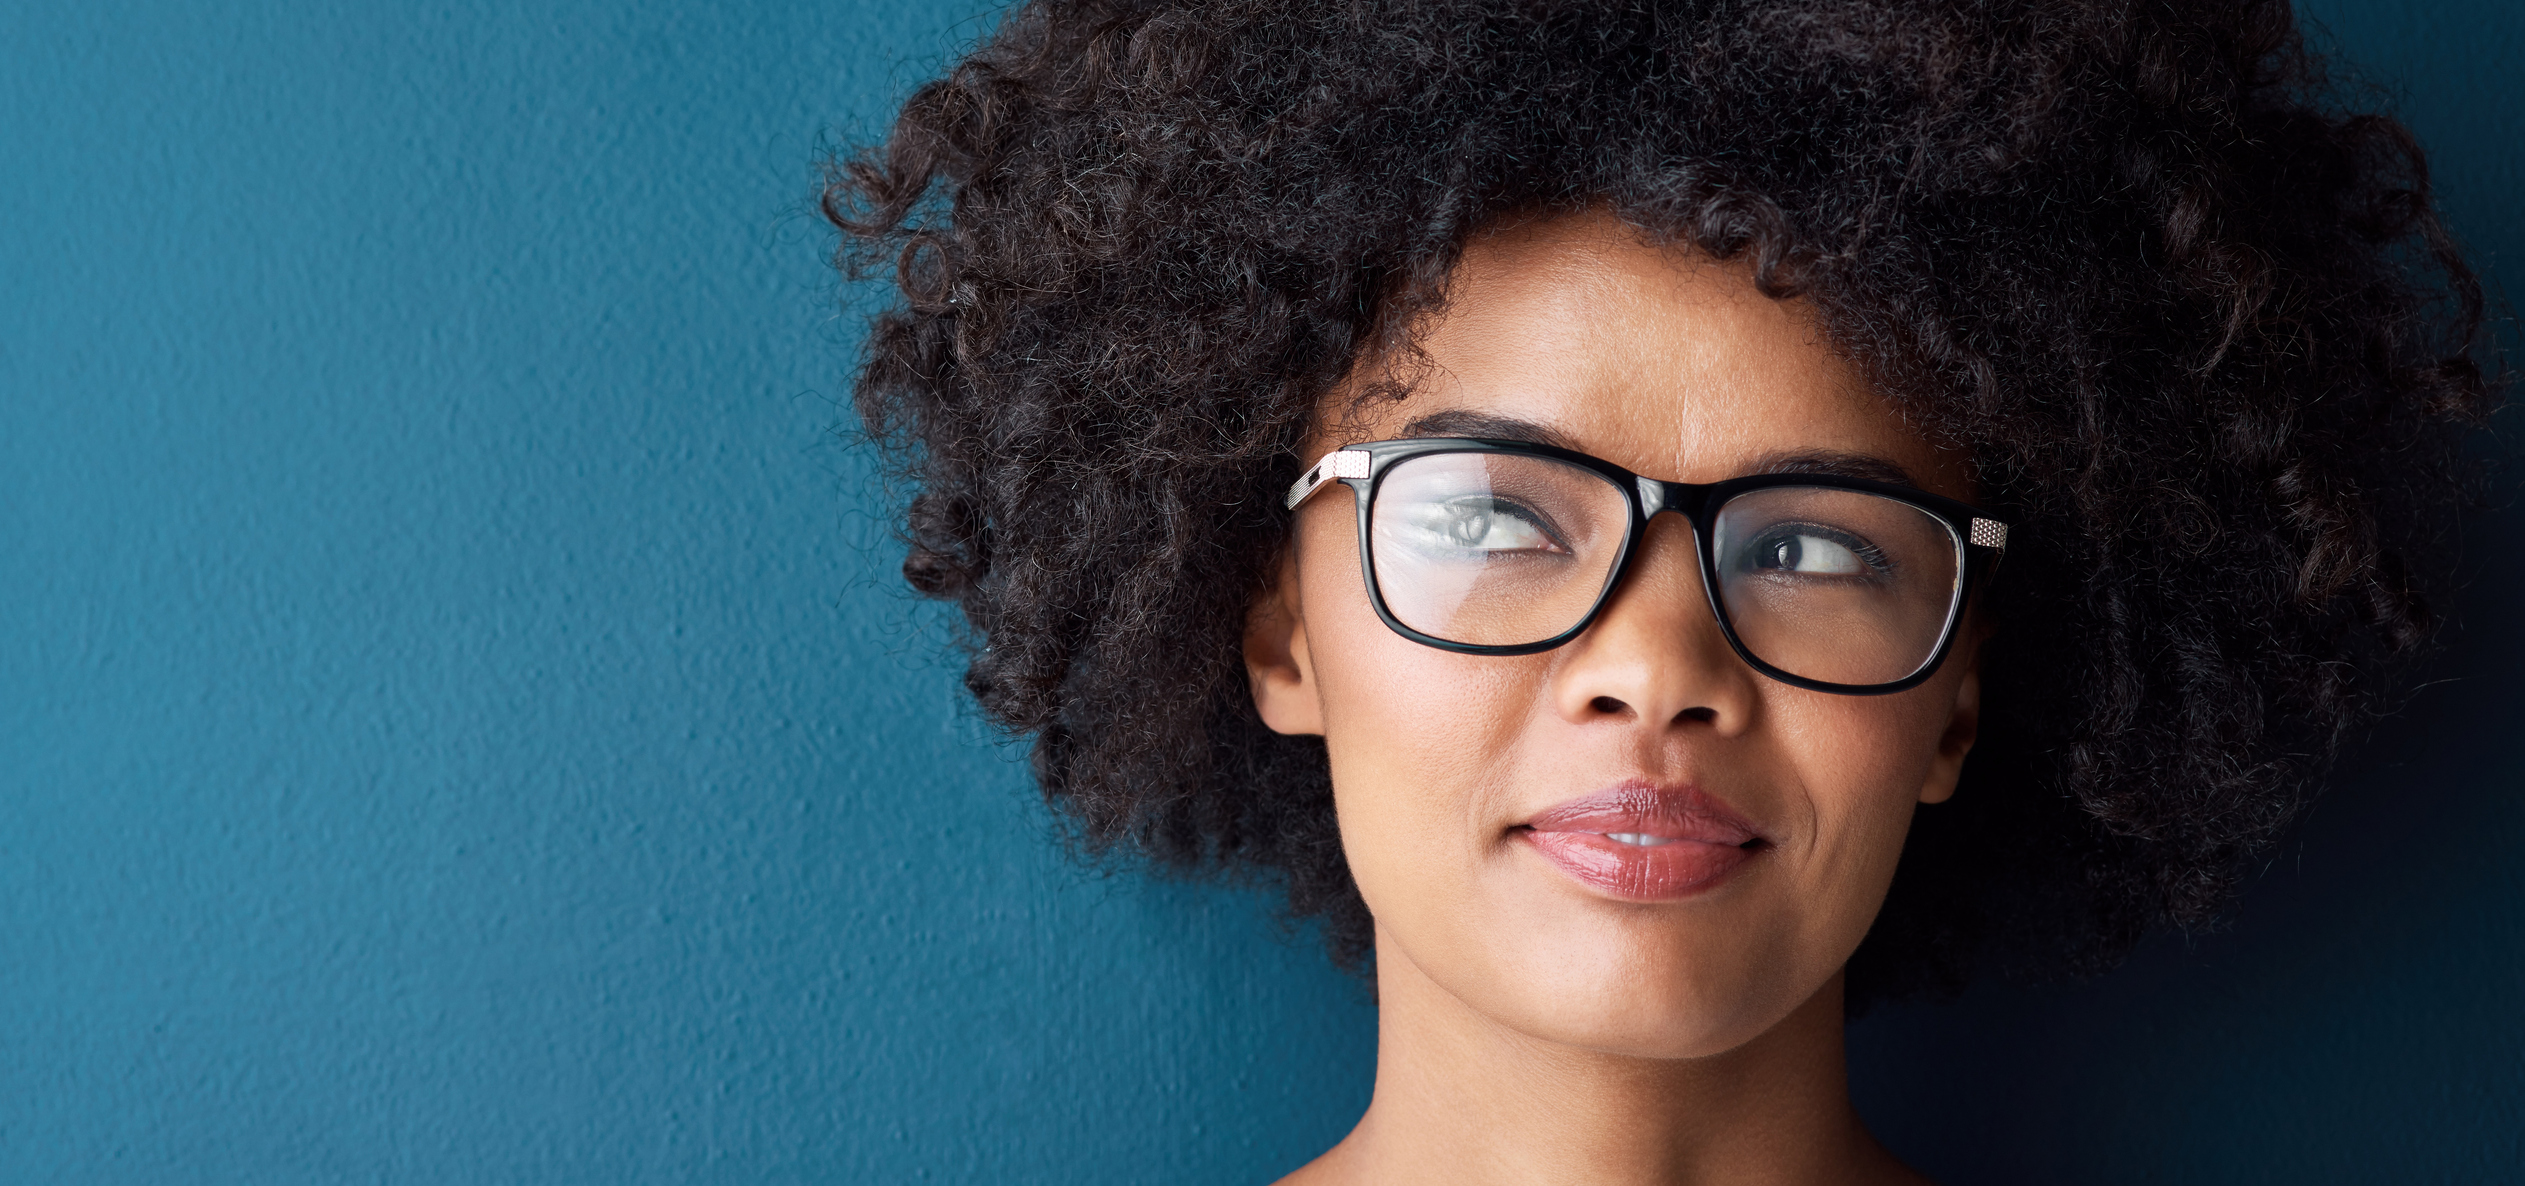 Thinking of ways to use her tax refund on eye care is this young woman wearing glasses looking thoughtful against a blue background.